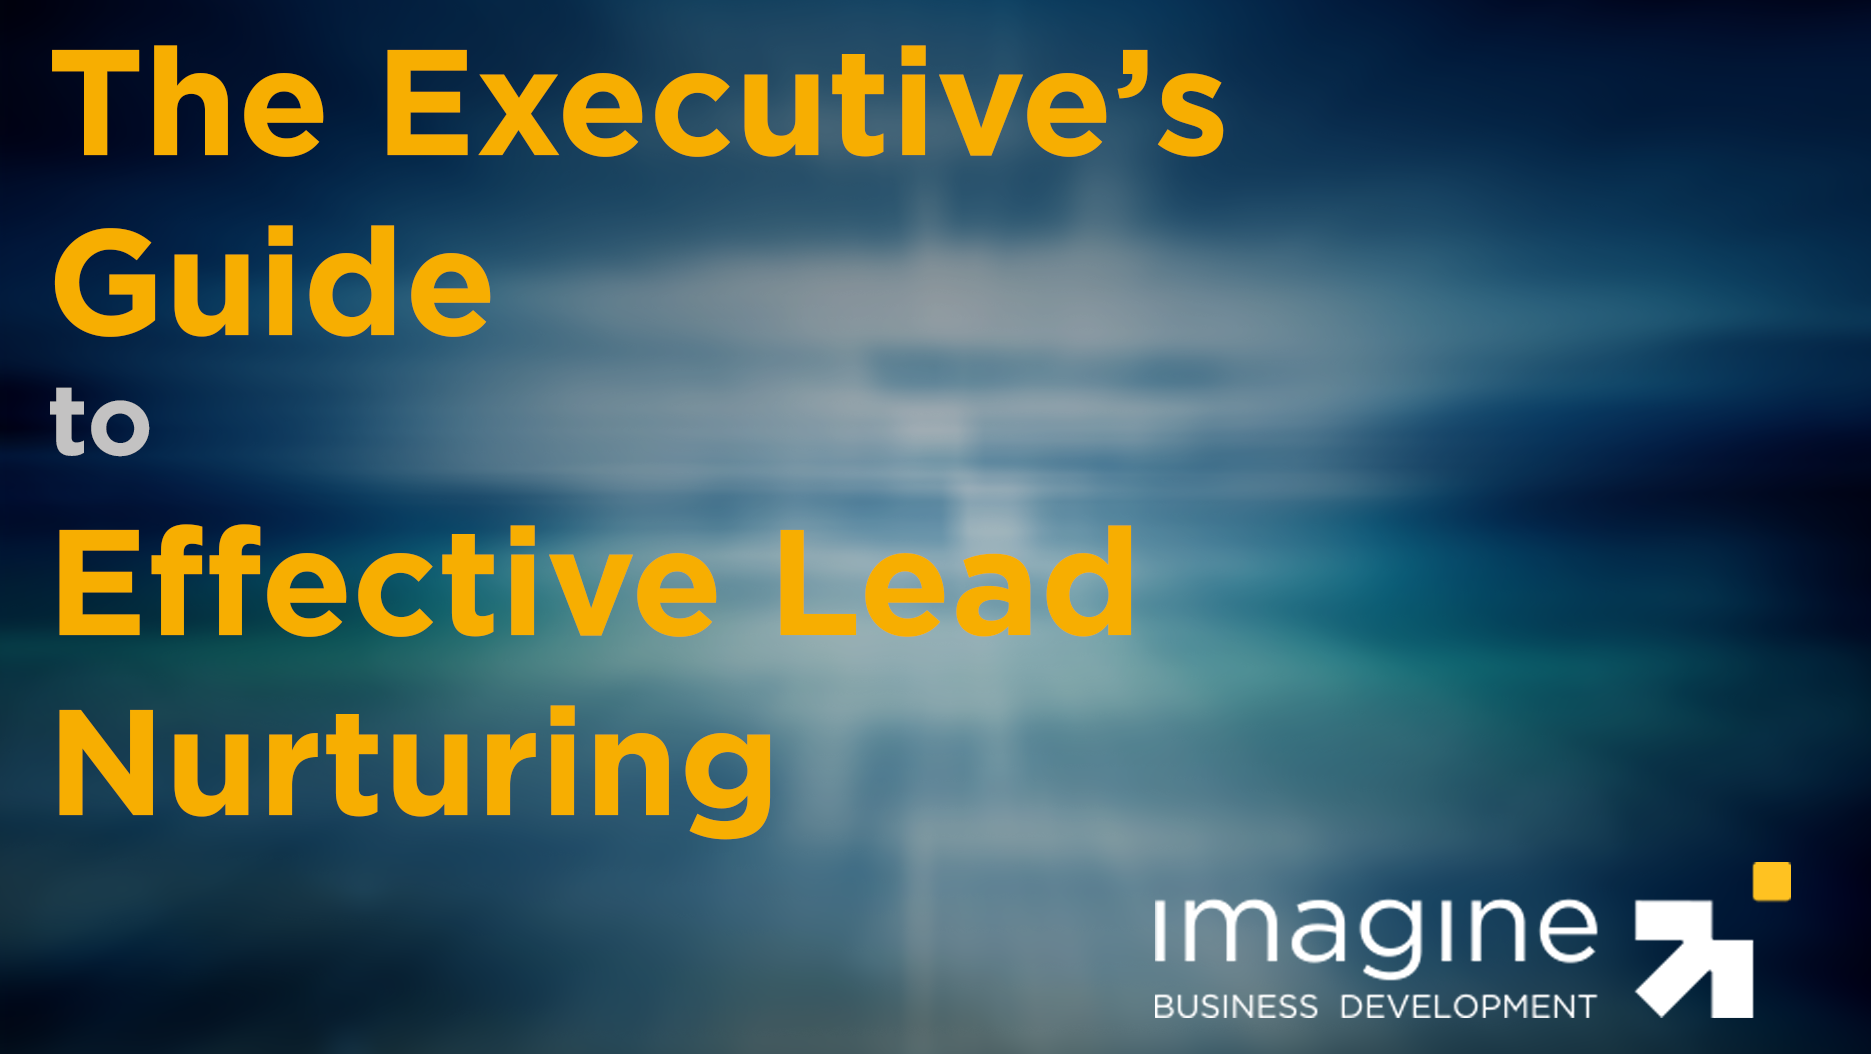 executives-guide-to-effective-lead-nurturing-cta